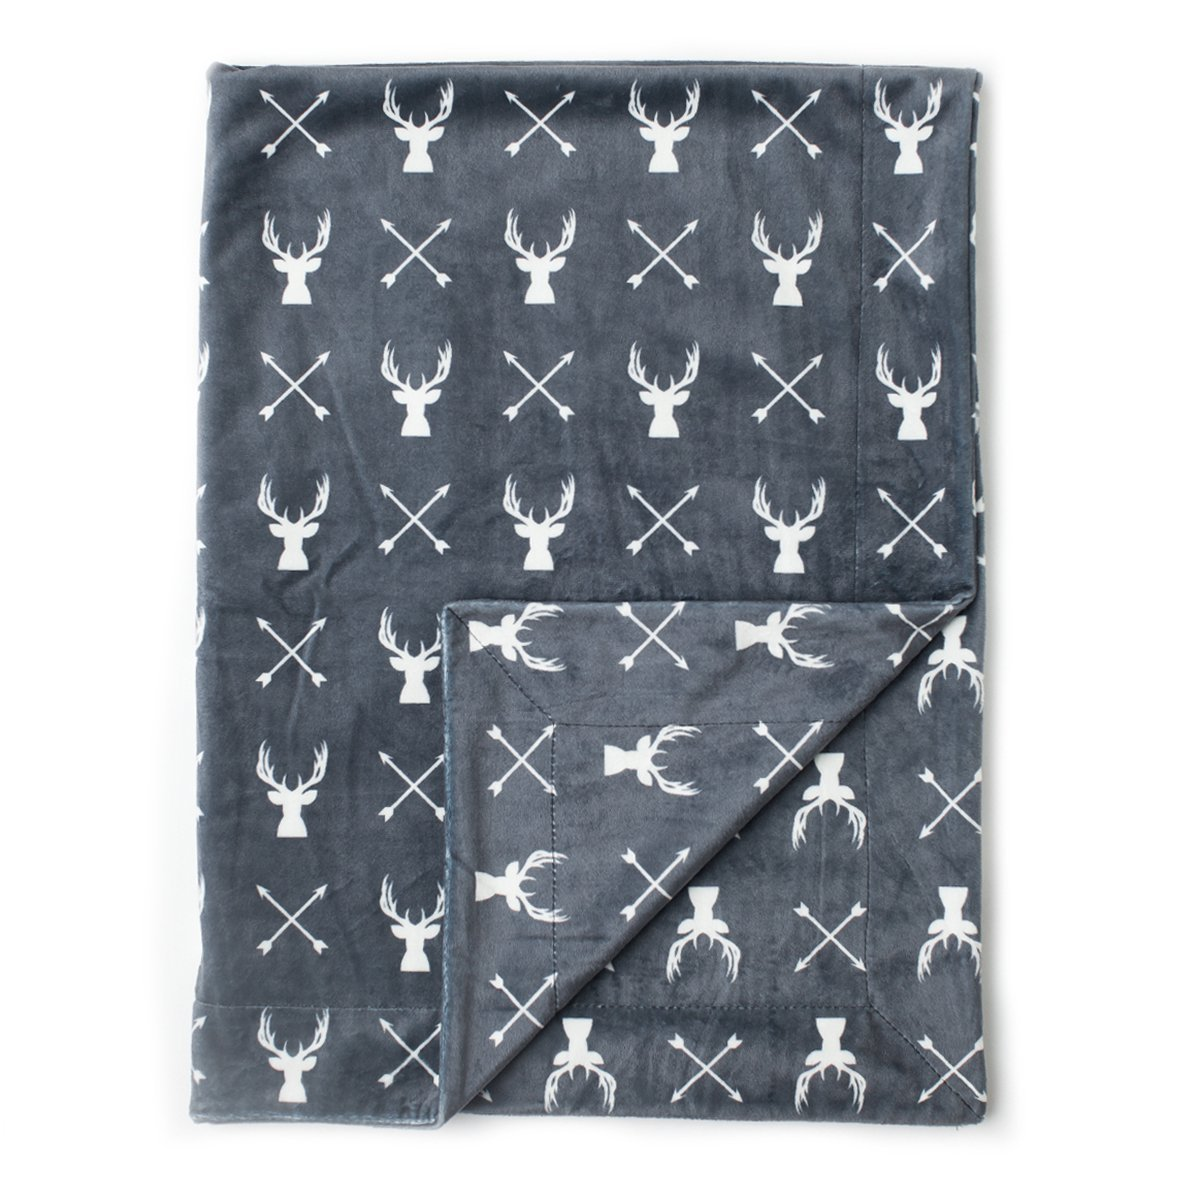 Kids N' Such Minky Baby Blanket 30' x 40' - Deer - Soft Swaddle Blanket for Newborns and Toddlers - Best for Boy or Girl Crib Bedding Nursery and Security - Plush Double Layer Fleece Fabric BLKT-STAG